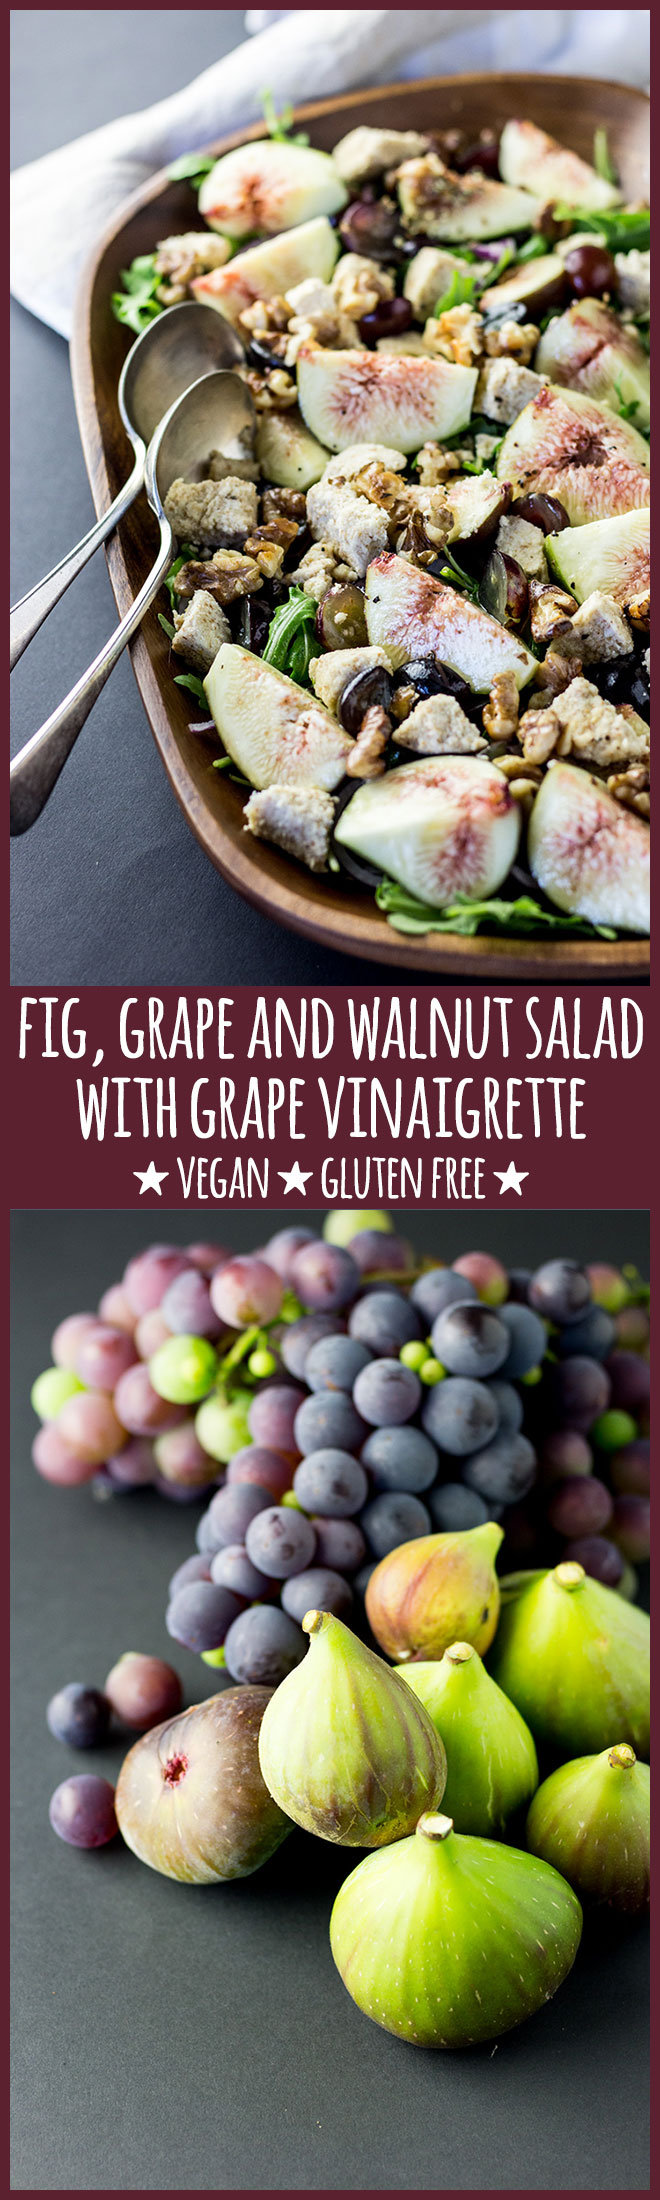 Fresh fig, grape and walnut salad with grape vinaigrette (vegan and gluten free).